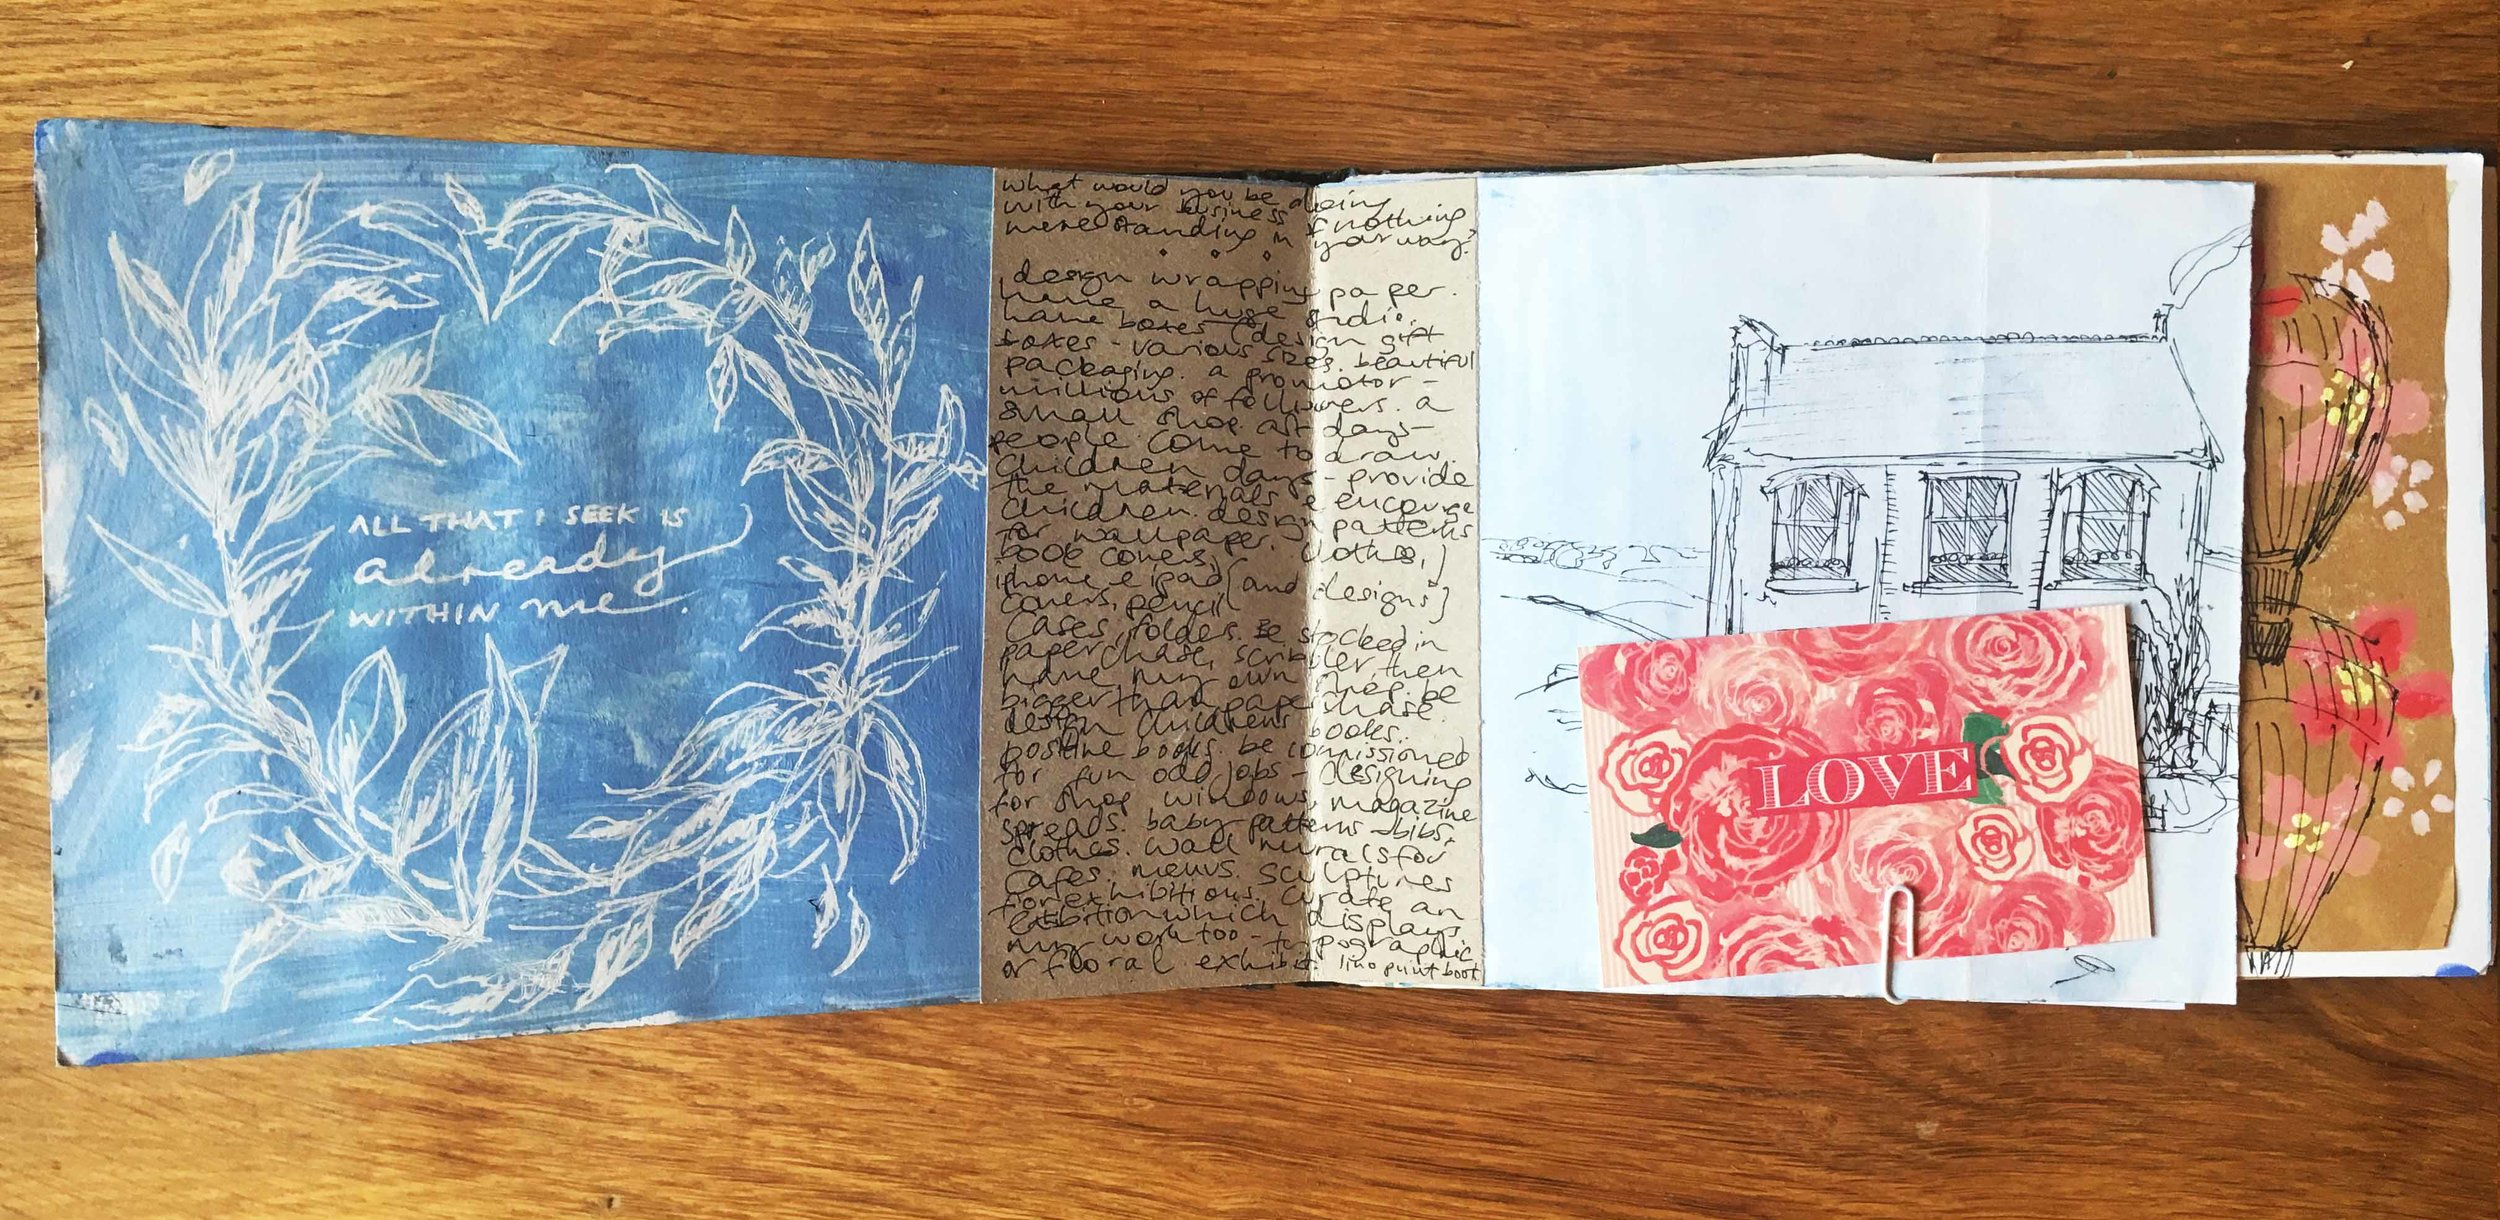 Amelia+Fisher+-+Sketchbook+Three.jpg